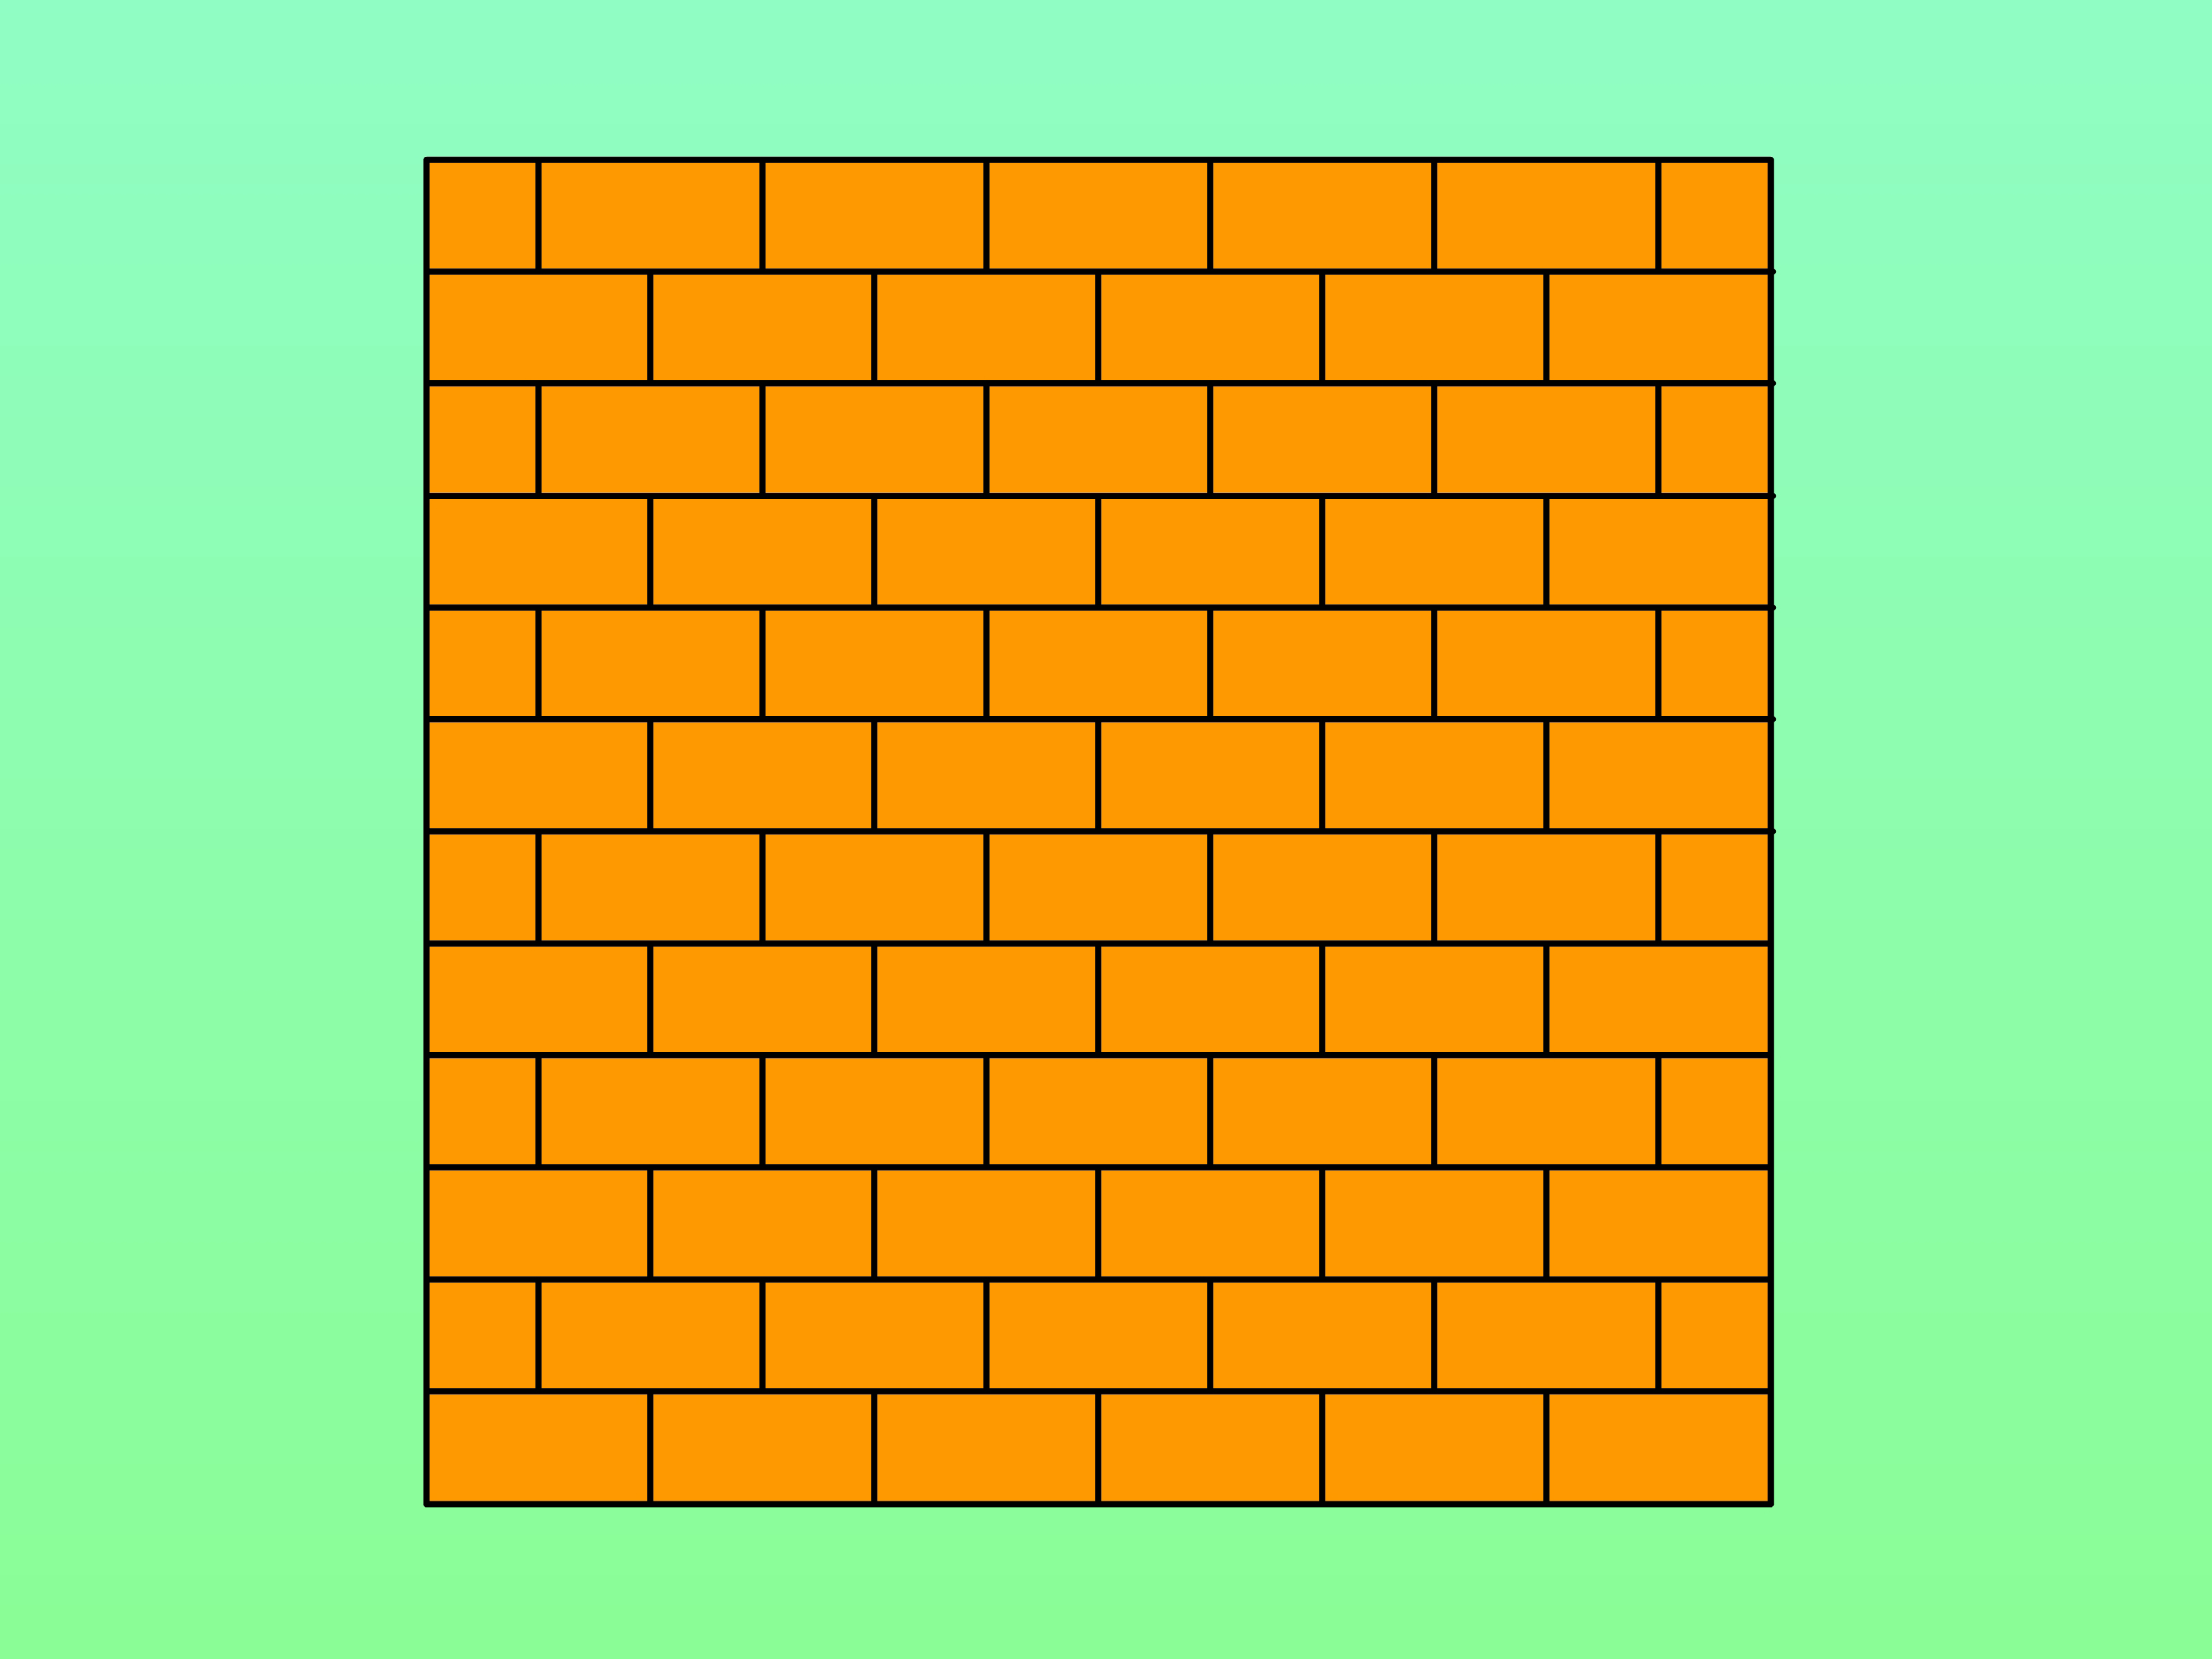 3200x2400 How To Draw A Brick Wall 6 Steps (With Pictures)